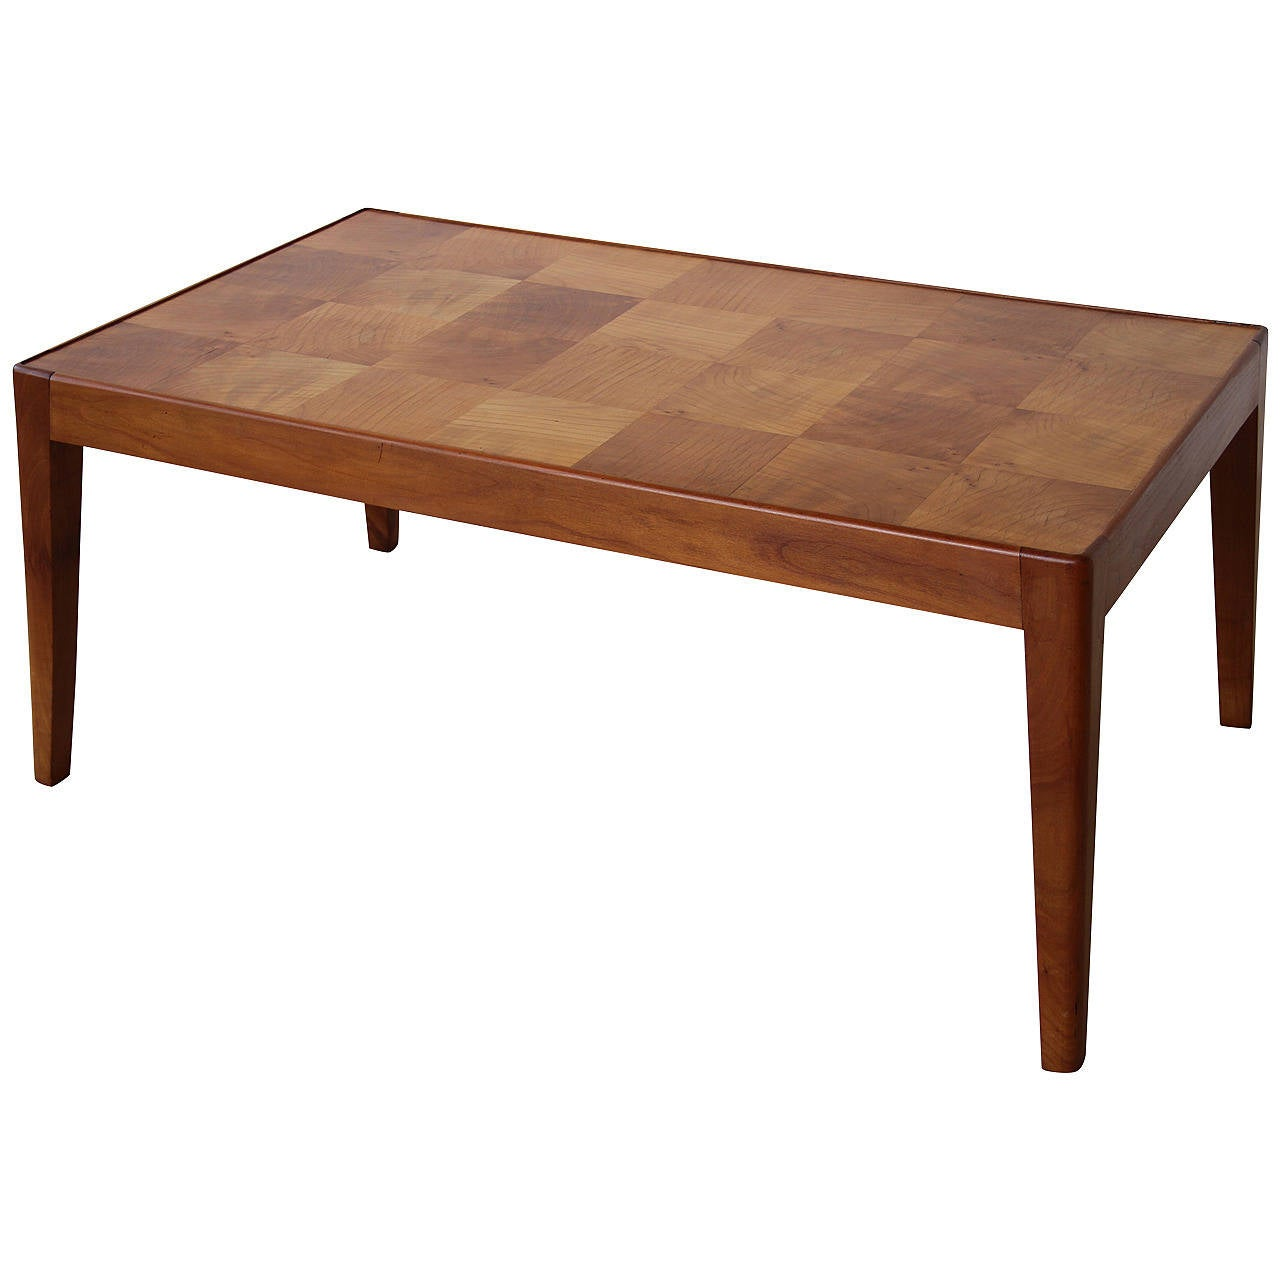 1950 wild cherry coffee table at 1stdibs Coffee table cherry